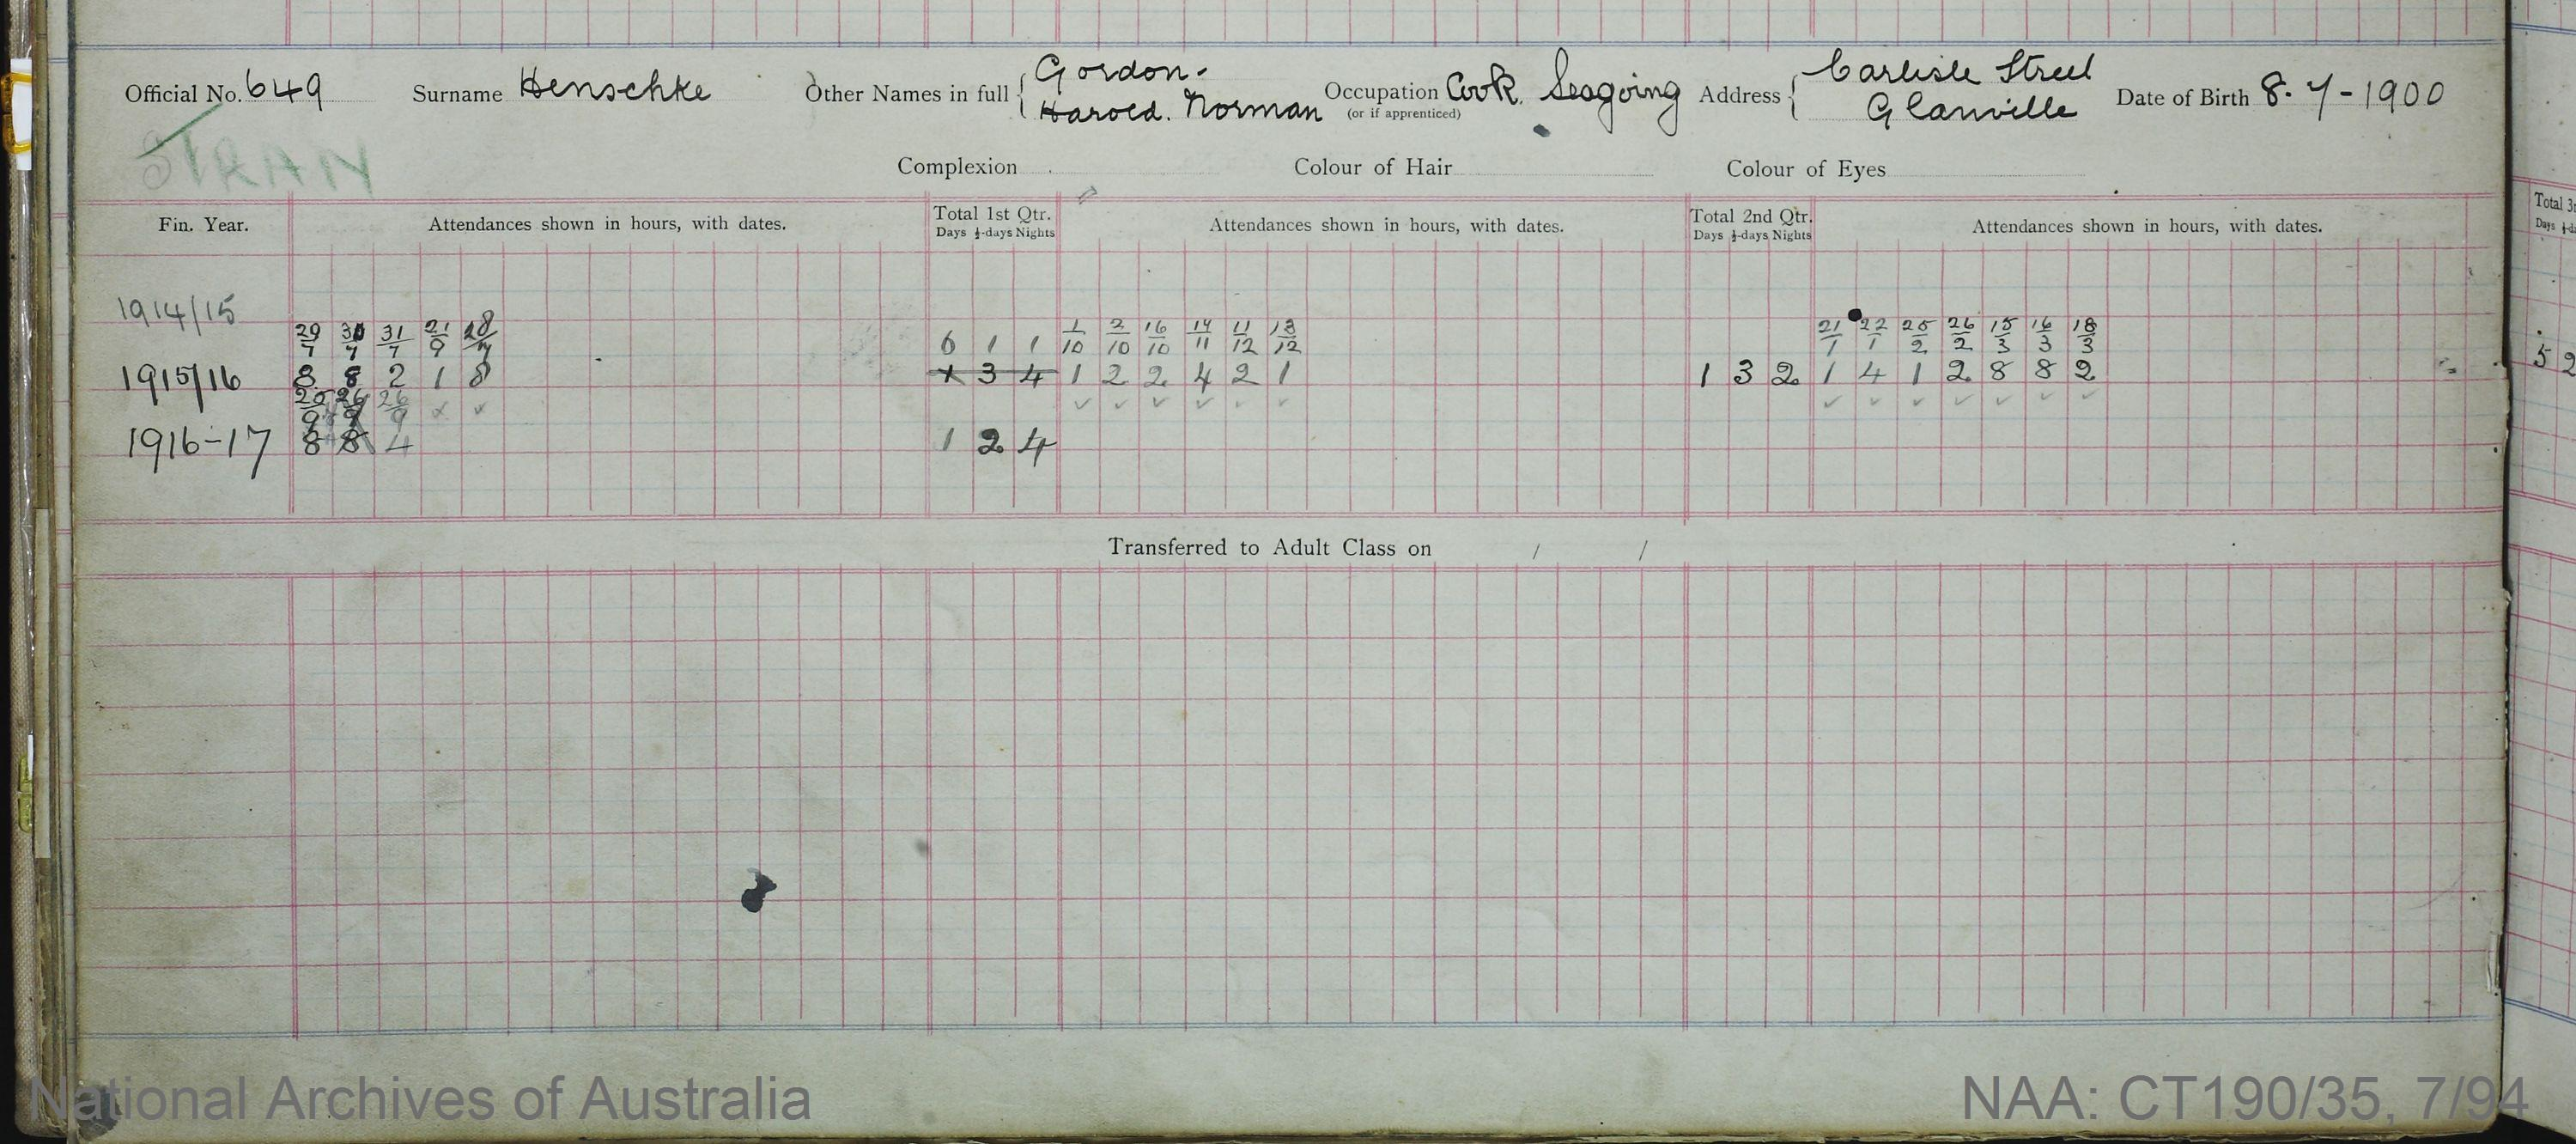 SURNAME - HENSCHKE;  GIVEN NAME(S) - Gordon Harold Norman;  OFFICIAL NUMBER - 649;  DATE OF BIRTH - 8 July 1900;  PLACE OF BIRTH - [Unknown];  NEXT OF KIN - [Unknown];  SERVICE/STATION - South Australia;  REGISTRATION DATE - 10 February 1914